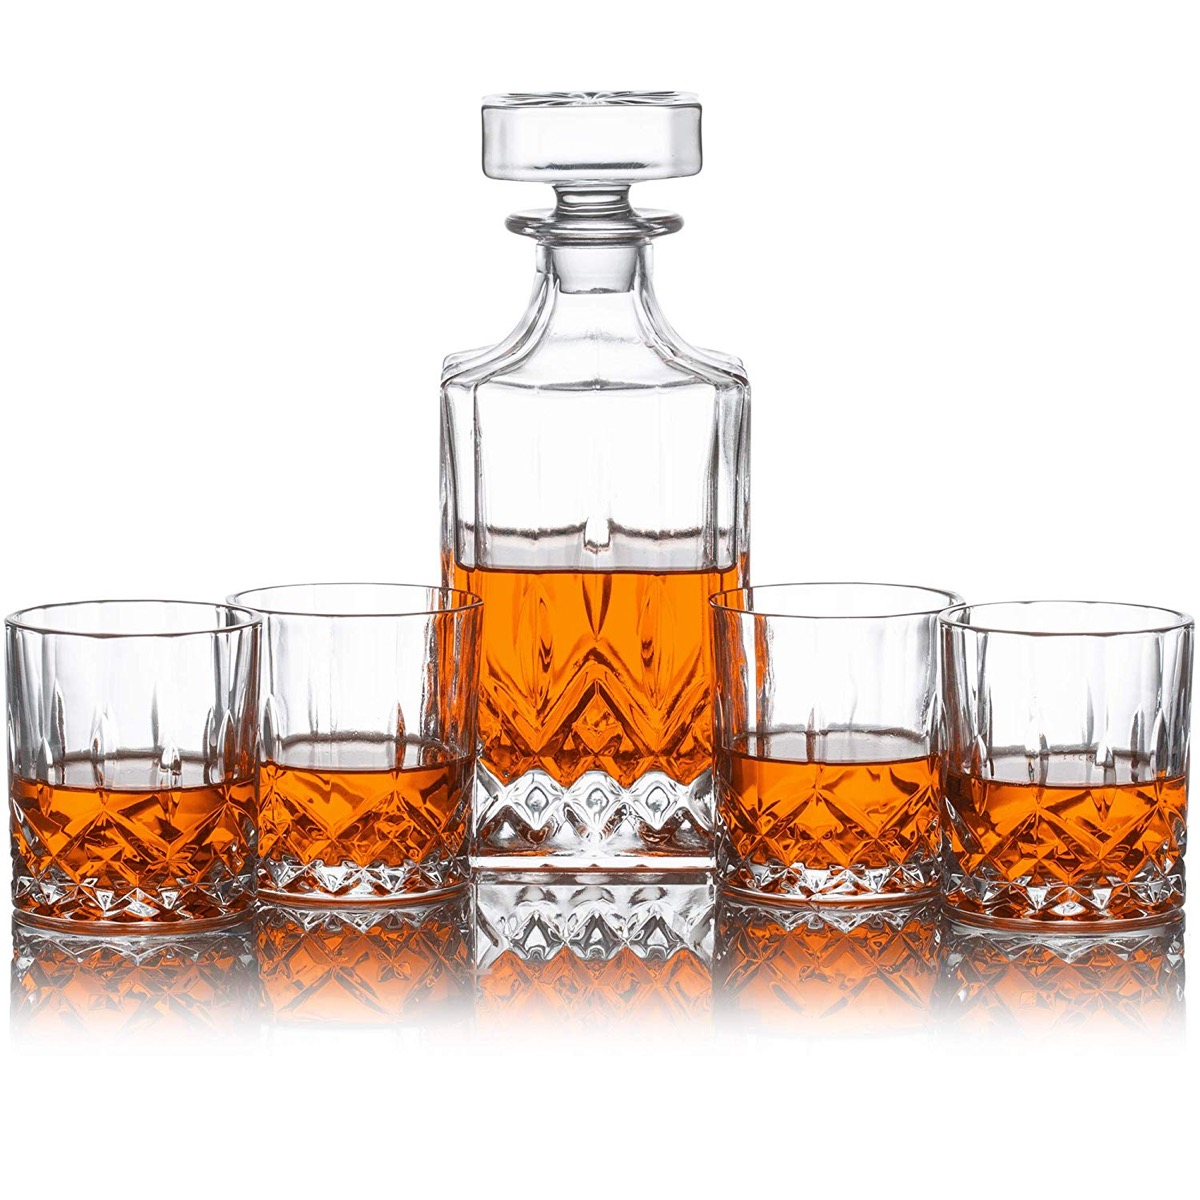 glass decanter and four cups with whiskey in them